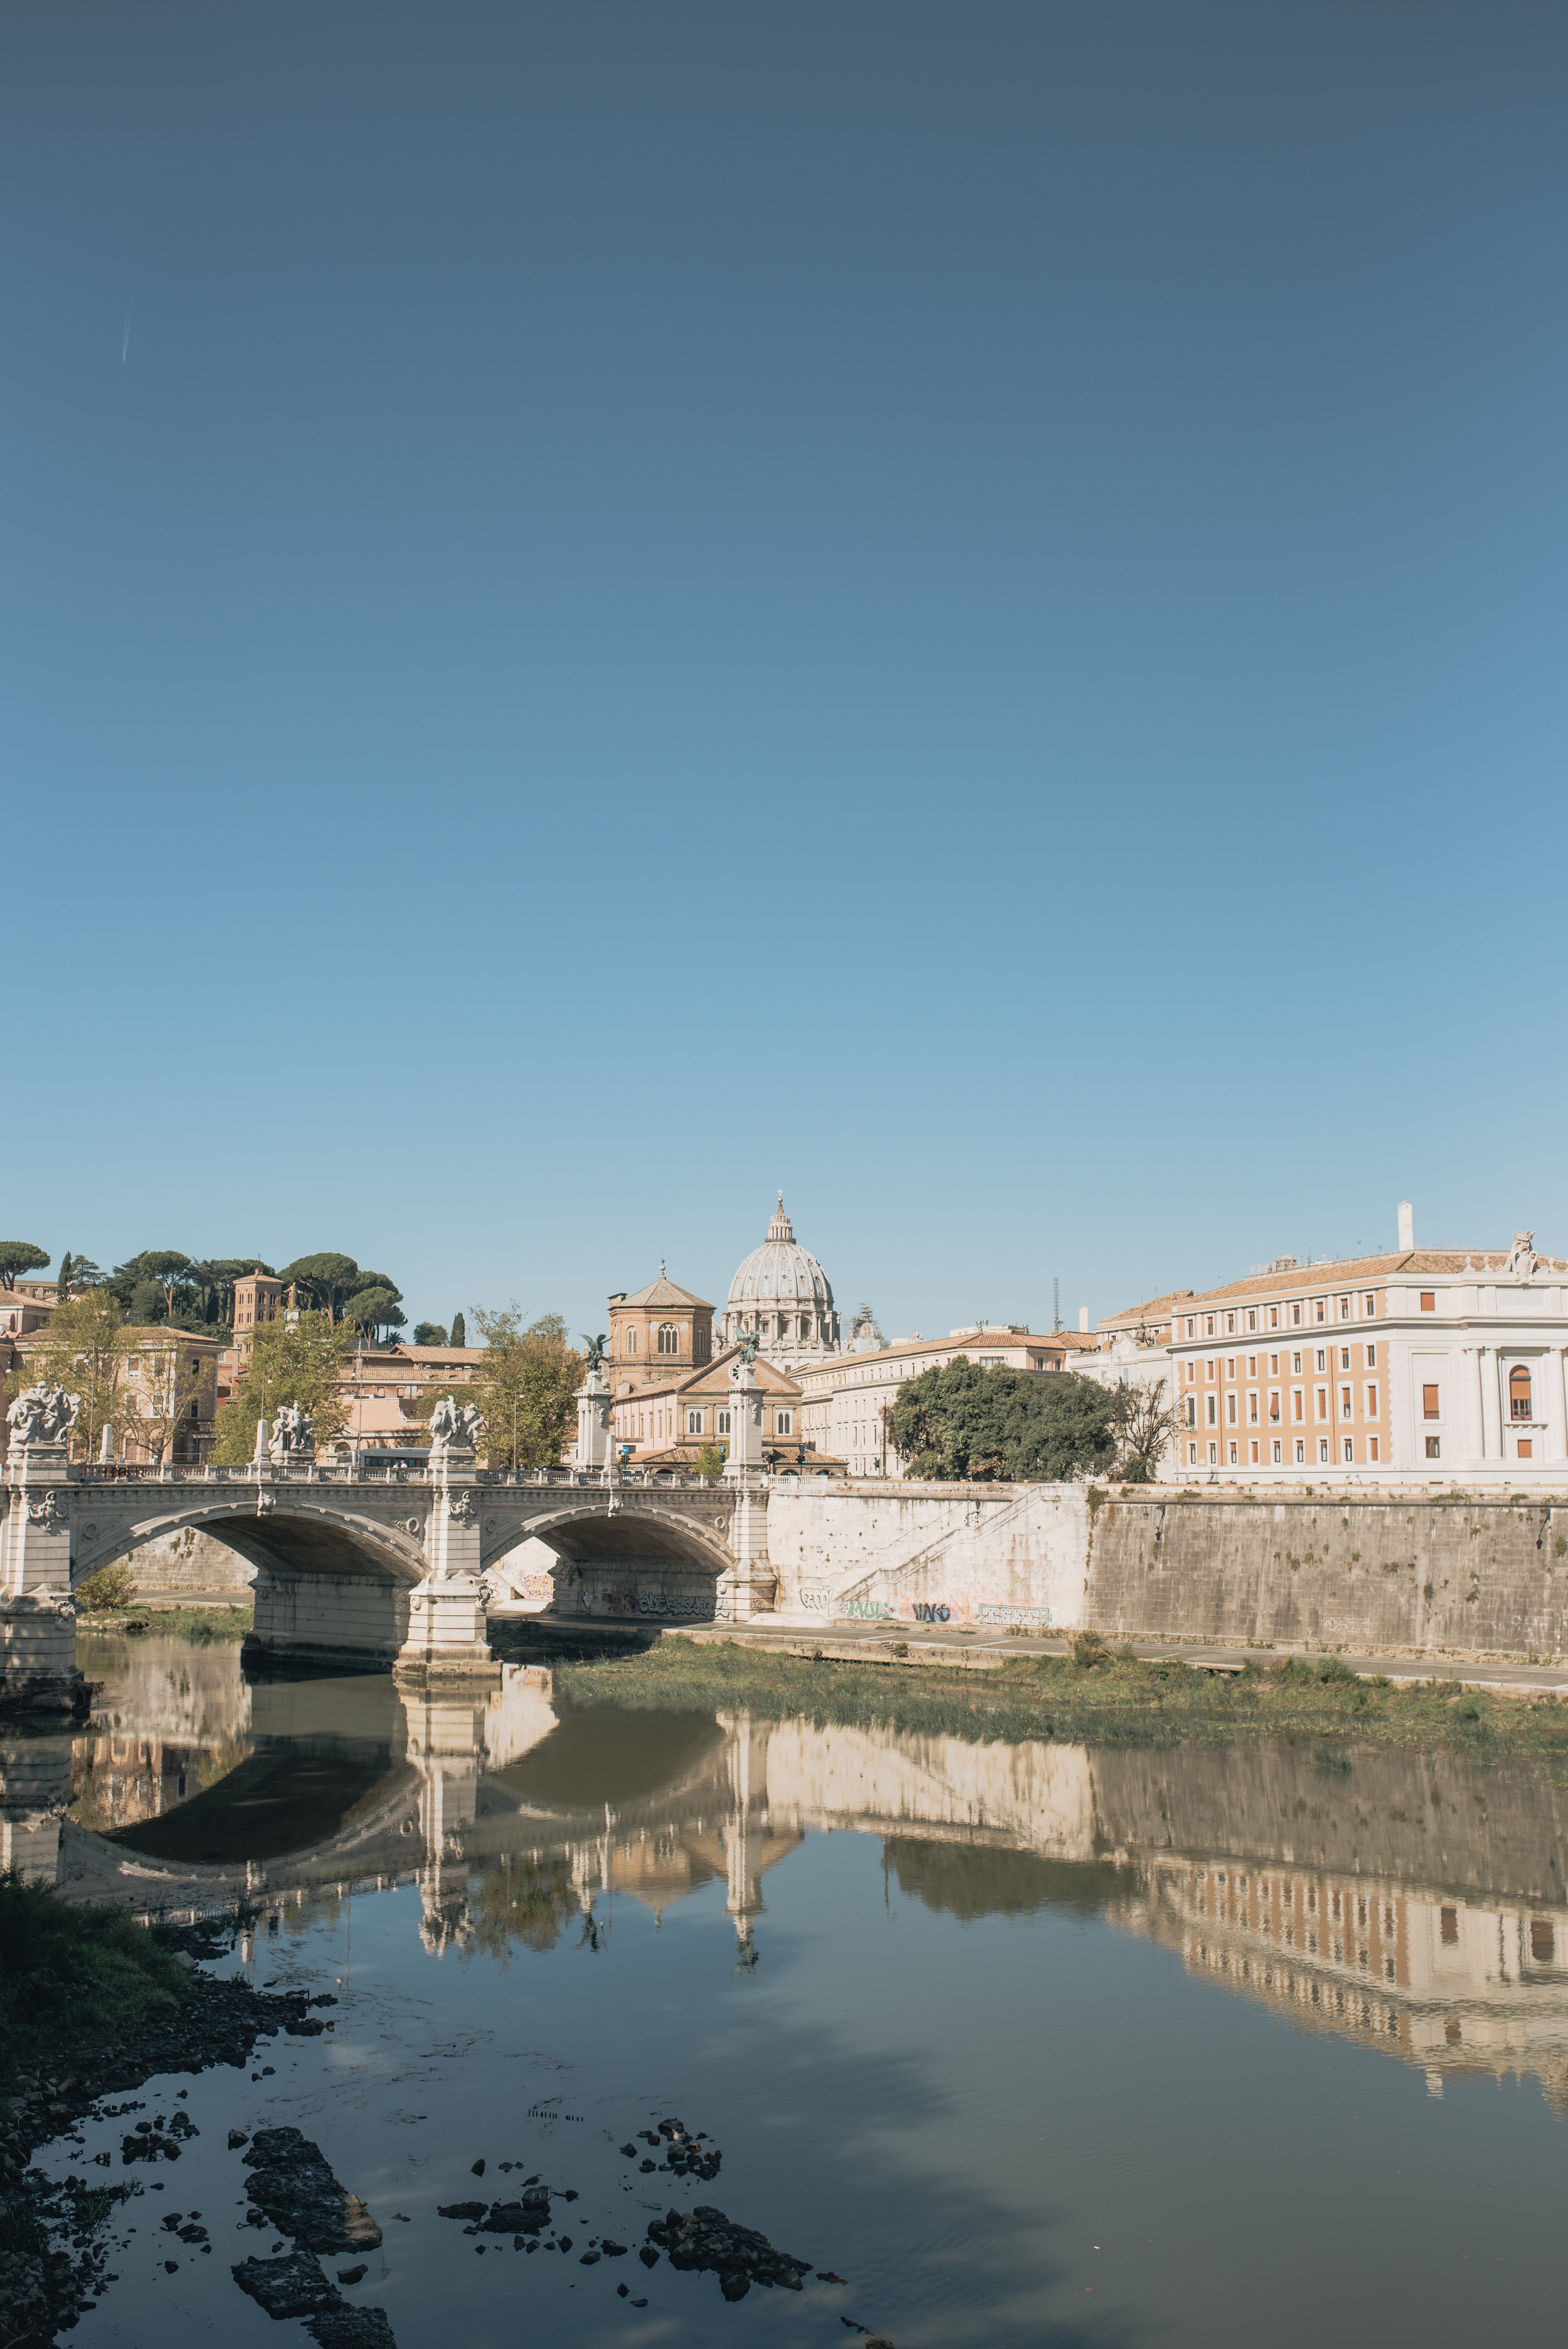 Looking across the river towards the Vatican